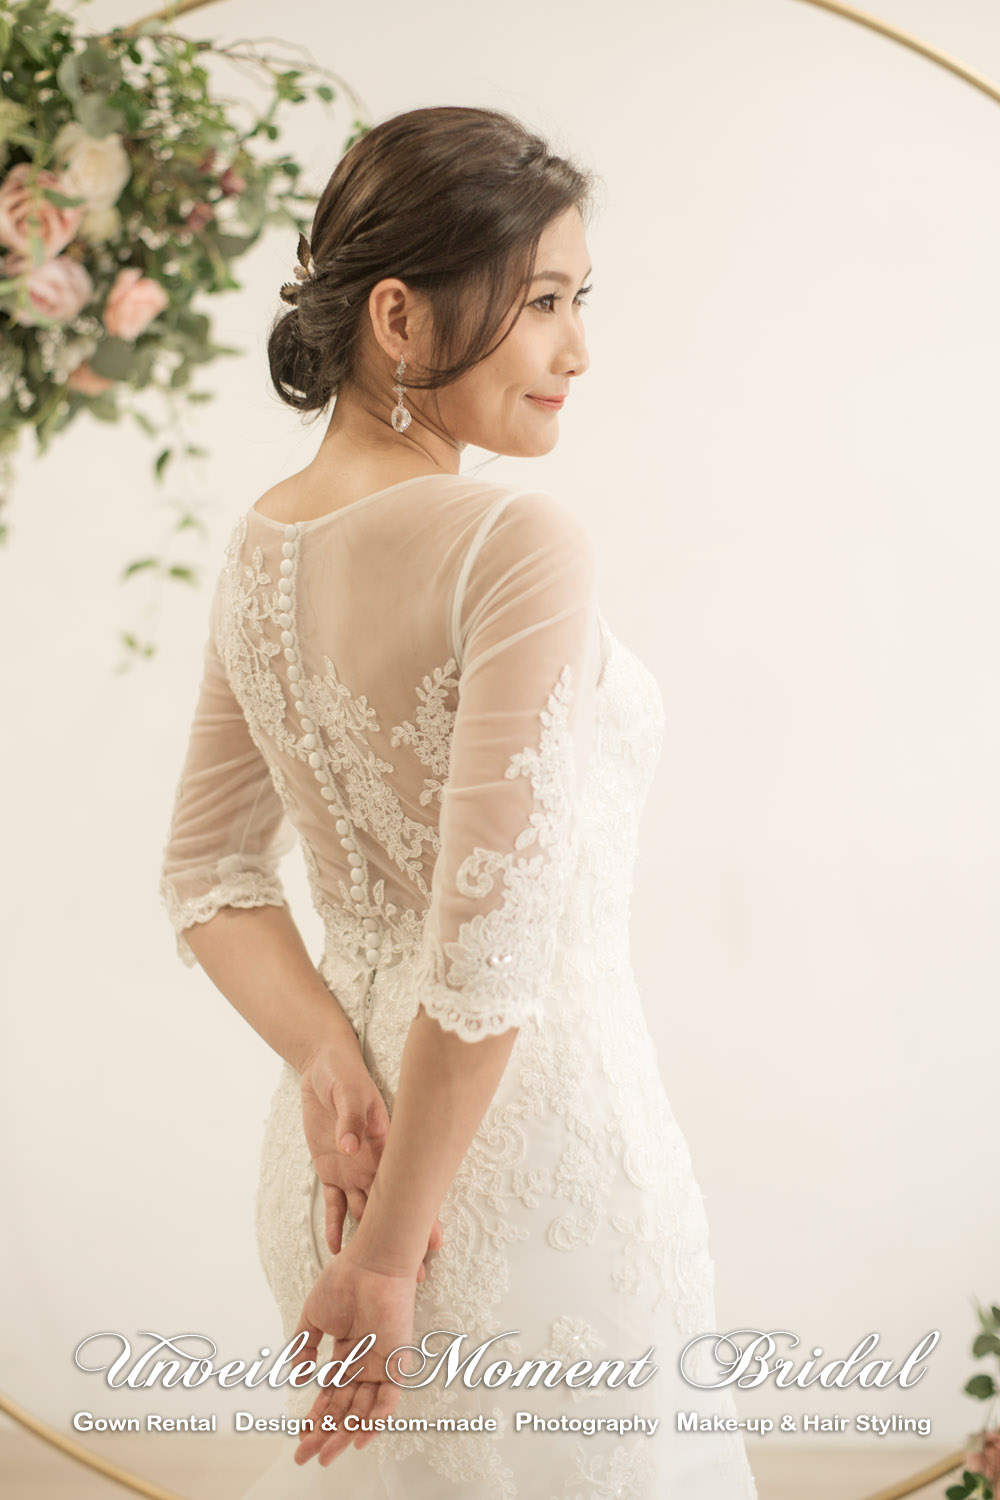 3/4 sleeves, mermaid vintage wedding dress with sweetheart and see-through boat neckline, see-through low back and decorated with lace appliques cathedral train. 中袖, 心形胸, 透視薄紗圓領, 蕾絲釘珠, 透視美背, 宮廷蕾絲花邊拖尾, 復古魚尾款婚紗